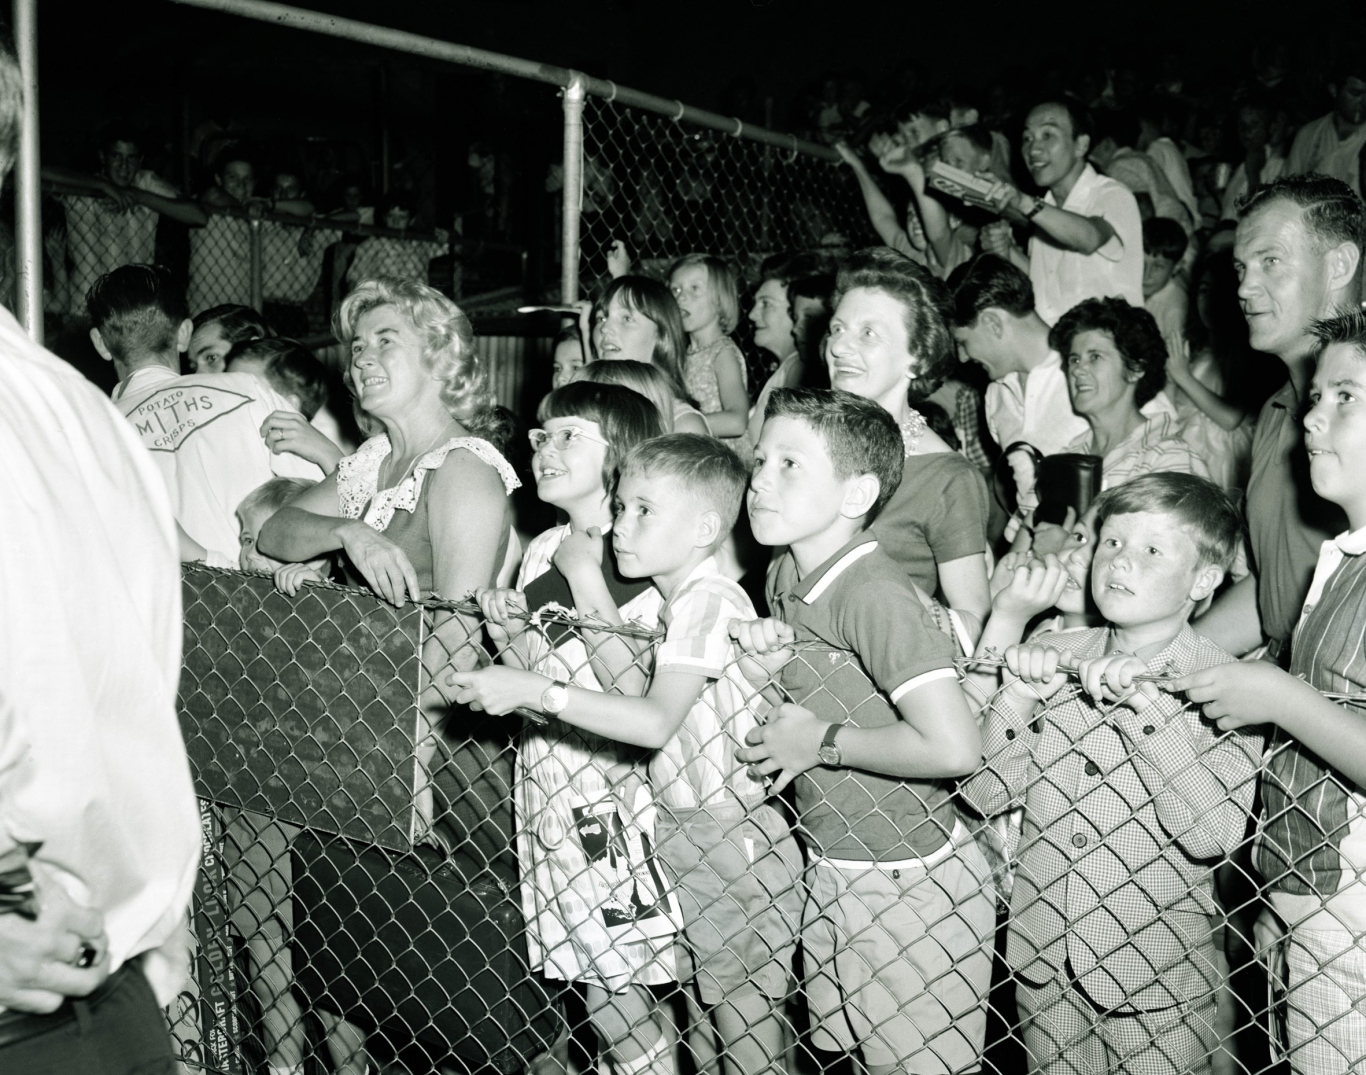 Young children and adults push at a wire fence watching a performance at the stadium.